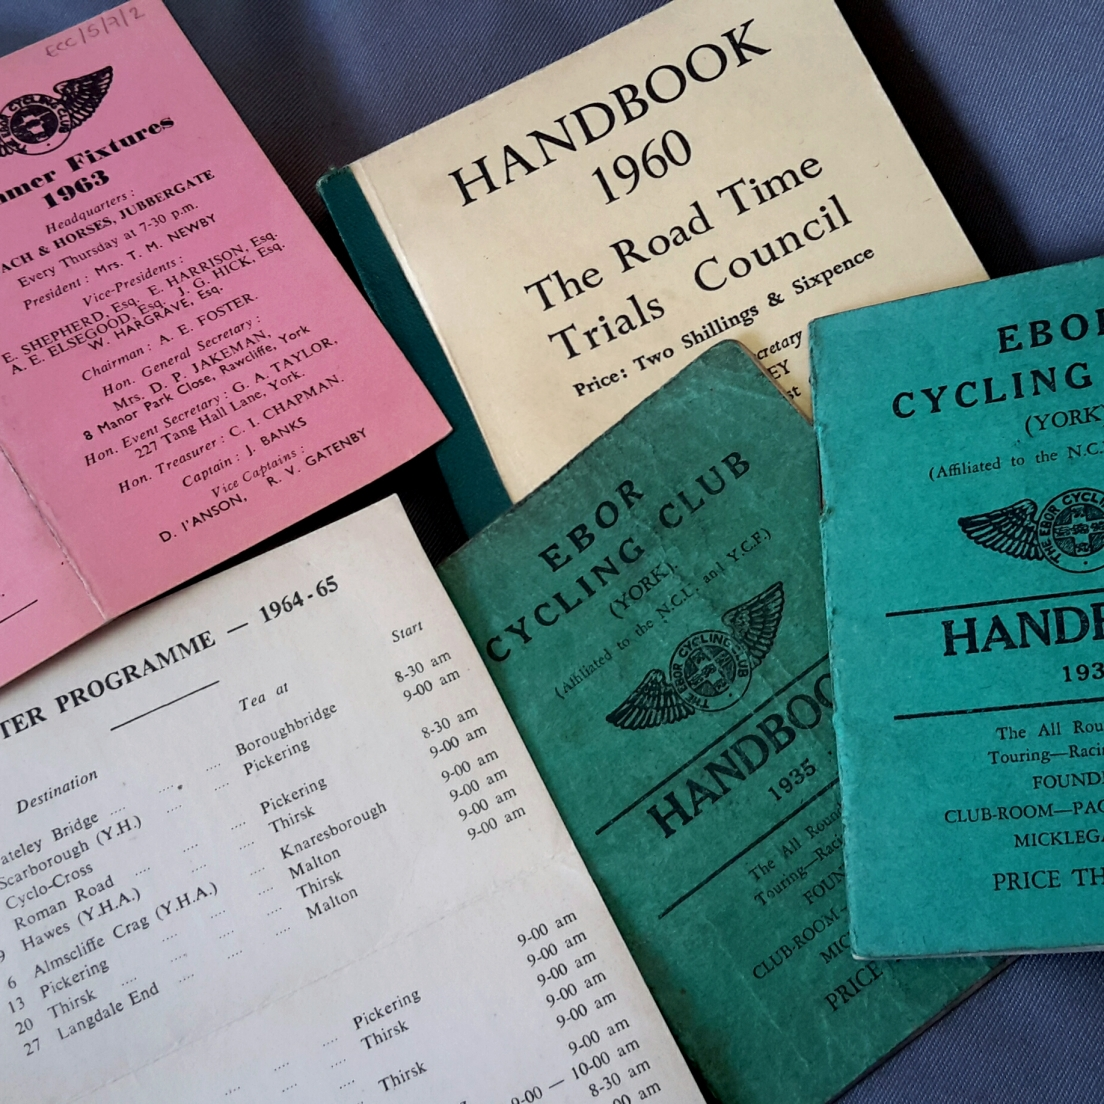 Ebor Cycling Club handbooks (ECC/5/6) and runs cards (ECC/5/8).